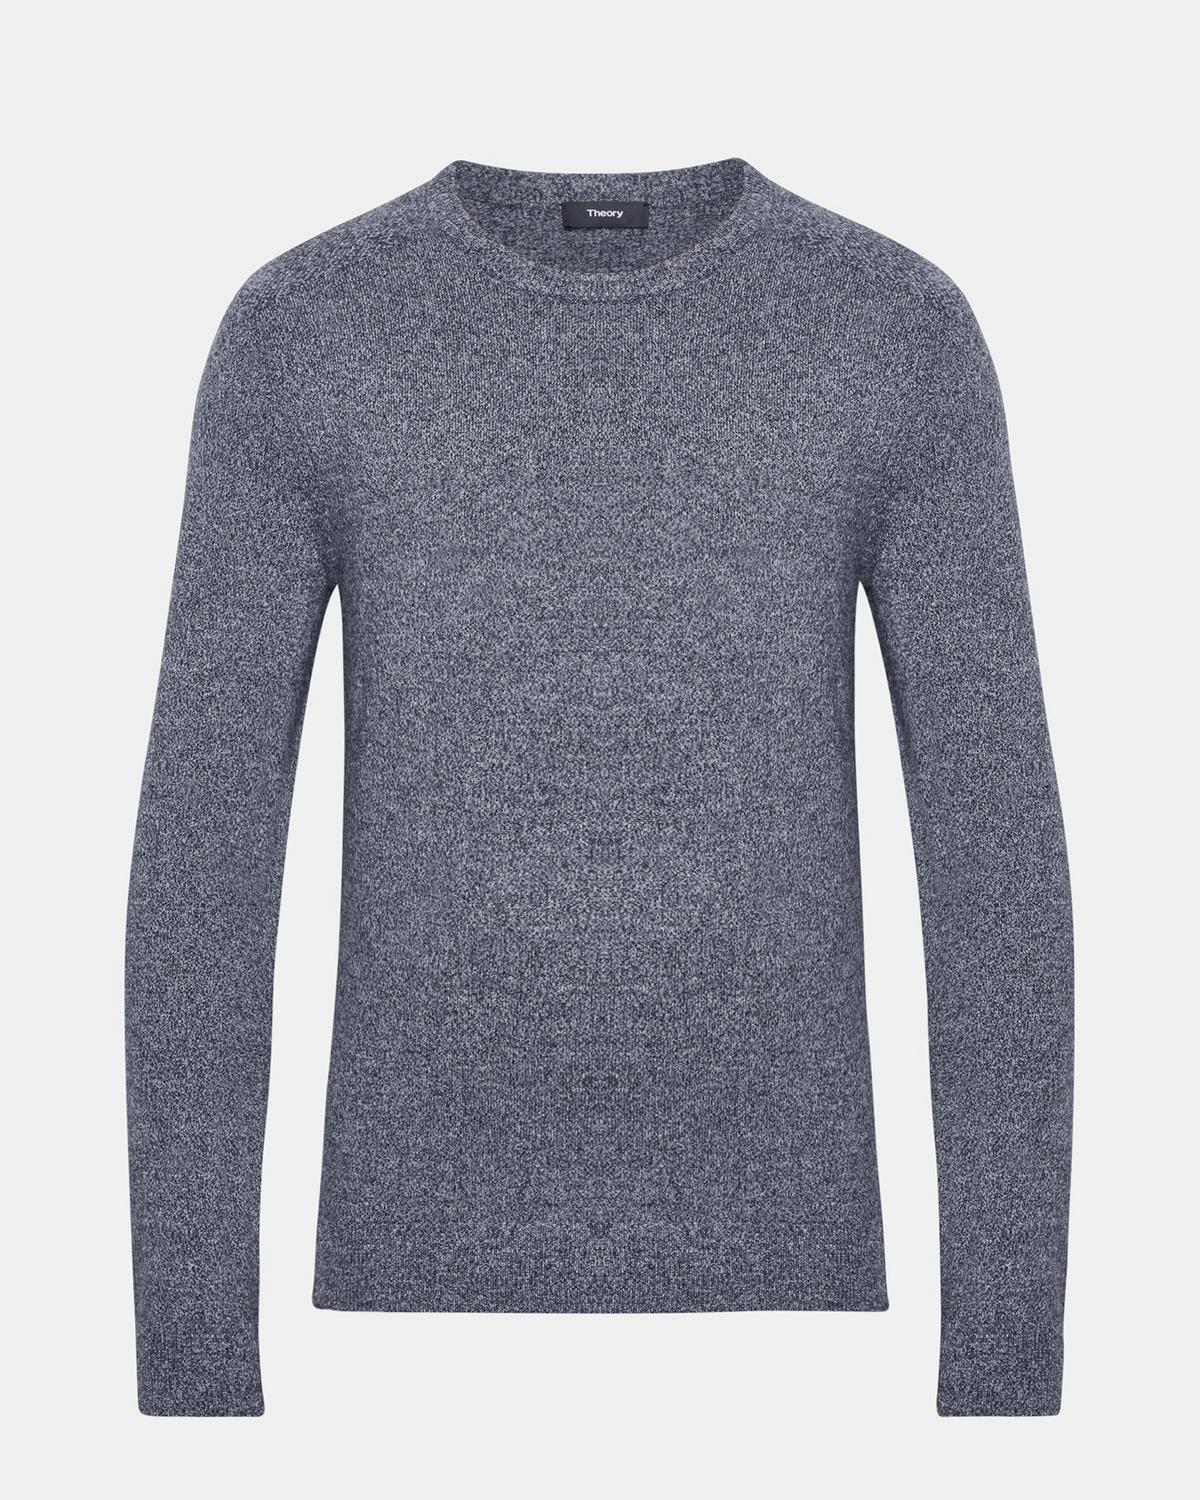 e14094842ee Cashmere Crewneck Sweater 1 - click to view larger image ...